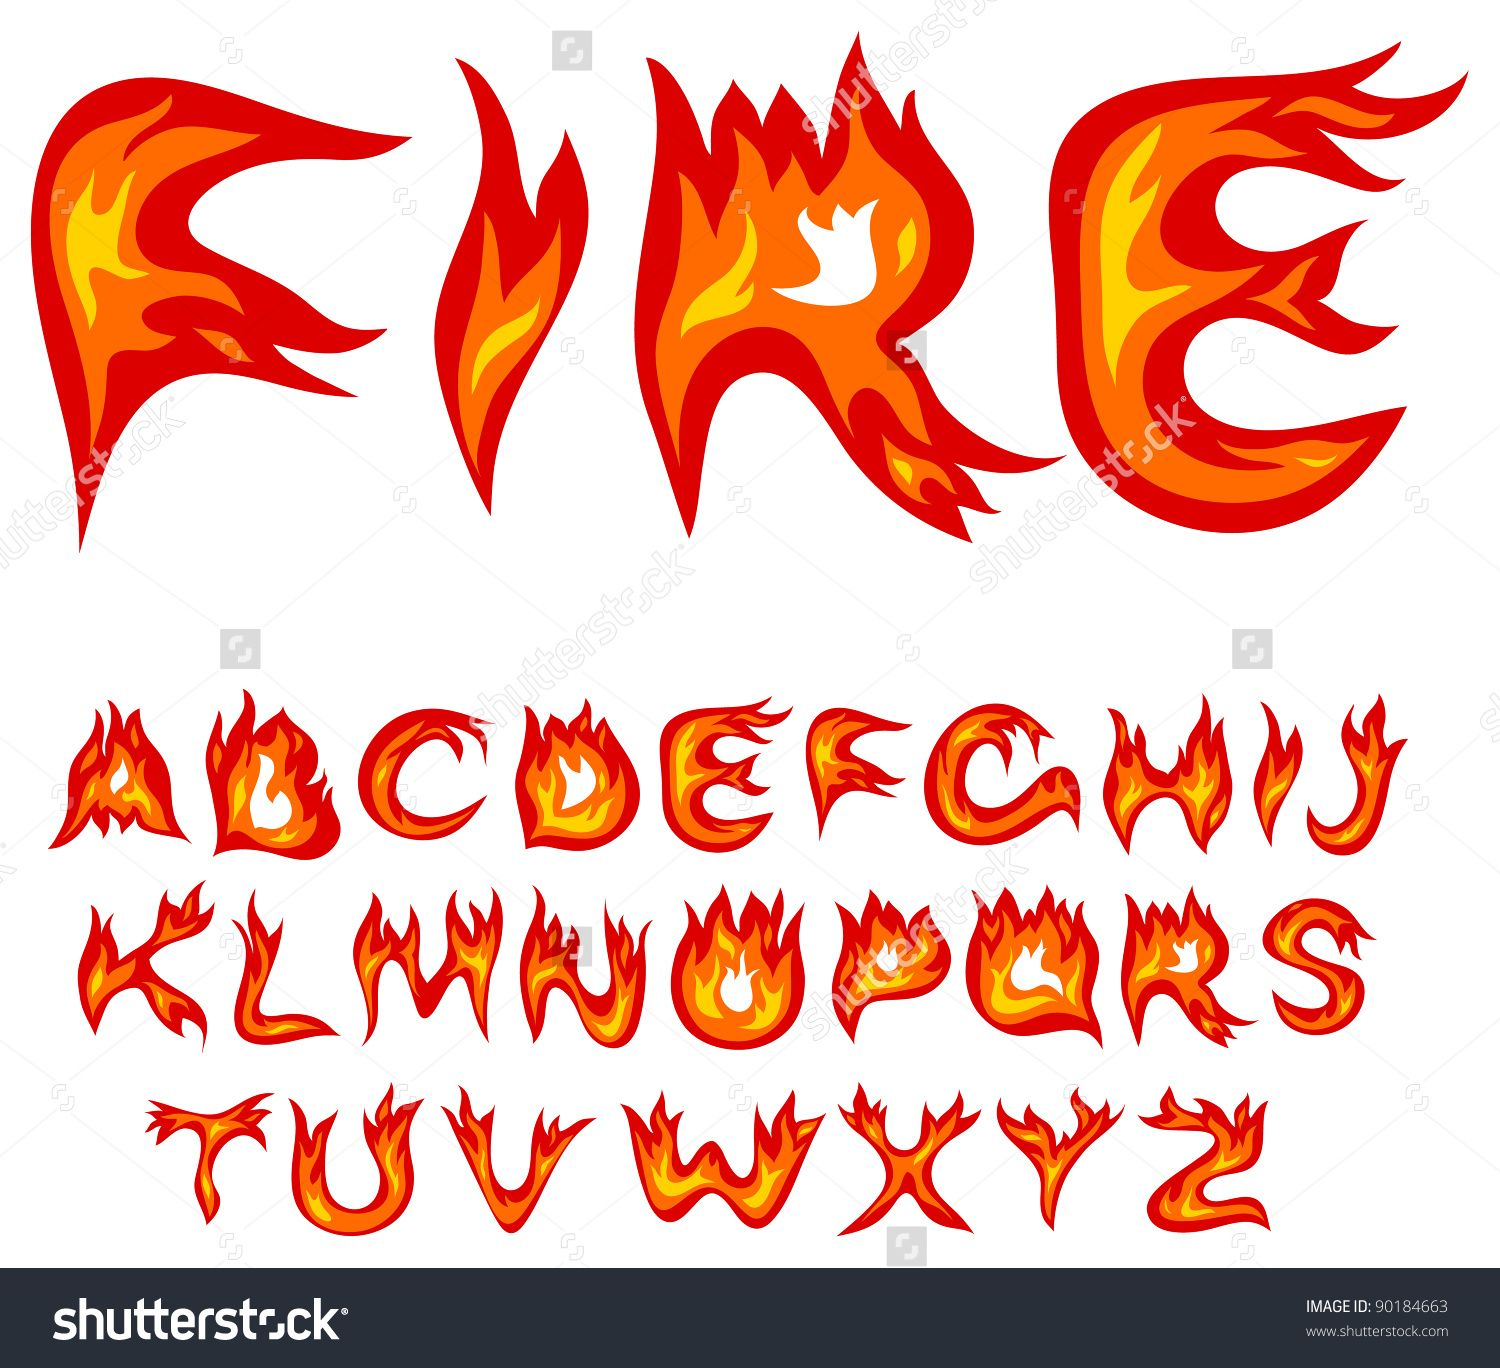 406d535f1955 letters as flames vector - Google Search